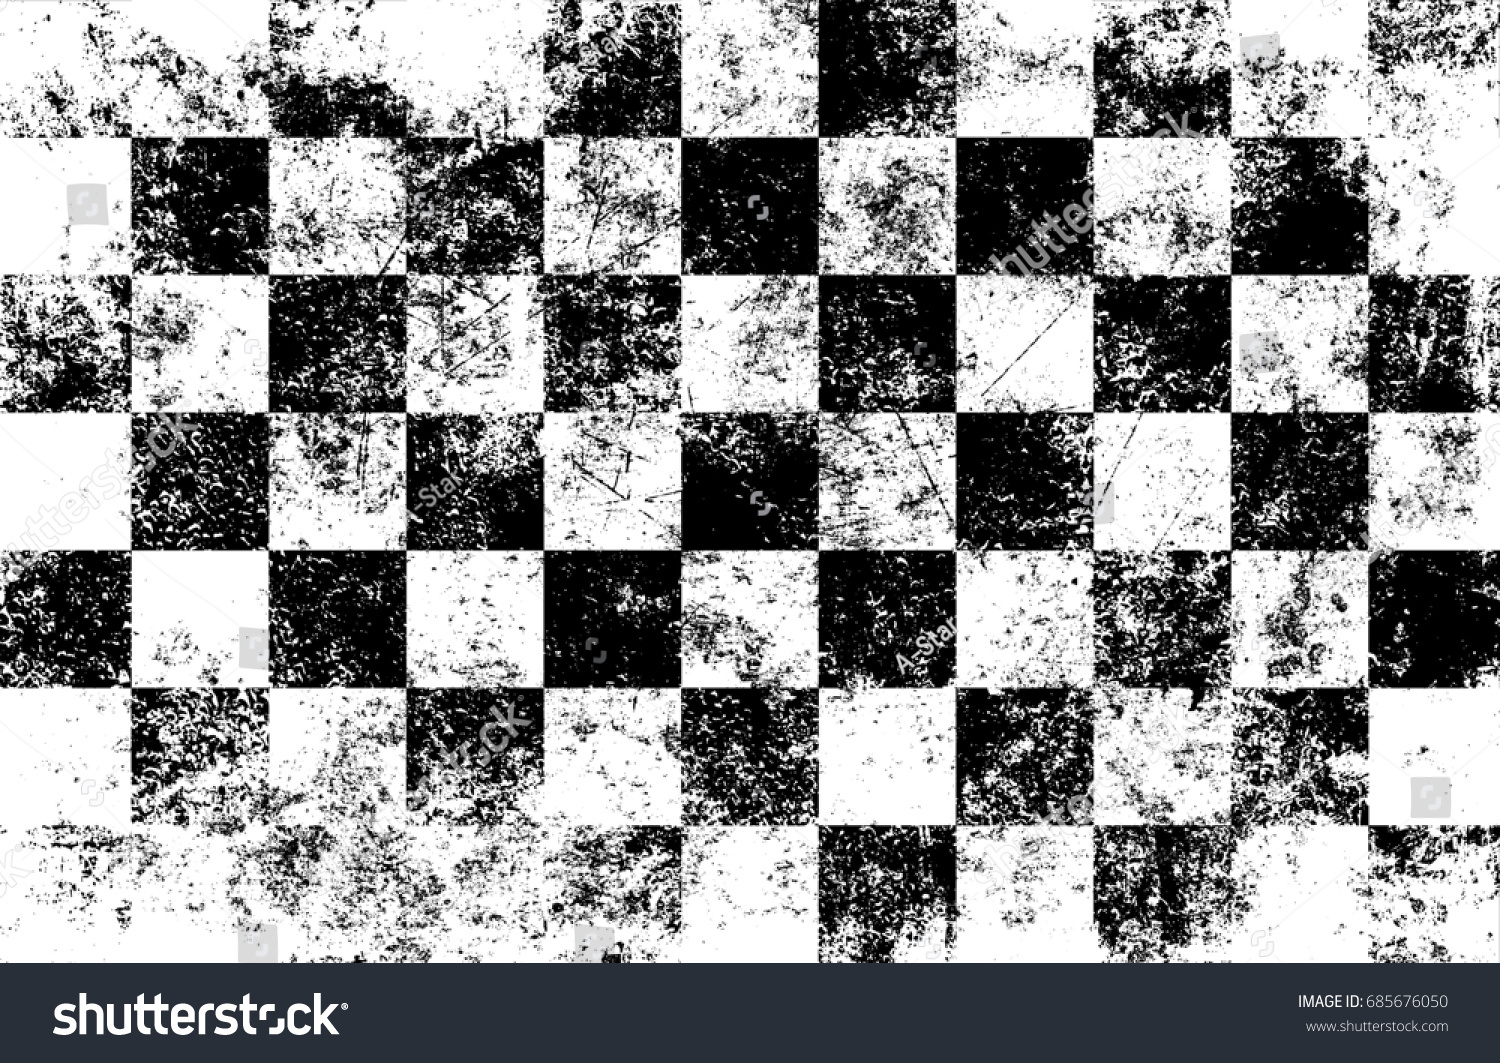 f87cc114492 Black white checkered grunge background. Worn scratched template. Shabby  overlay pattern. Distress texture